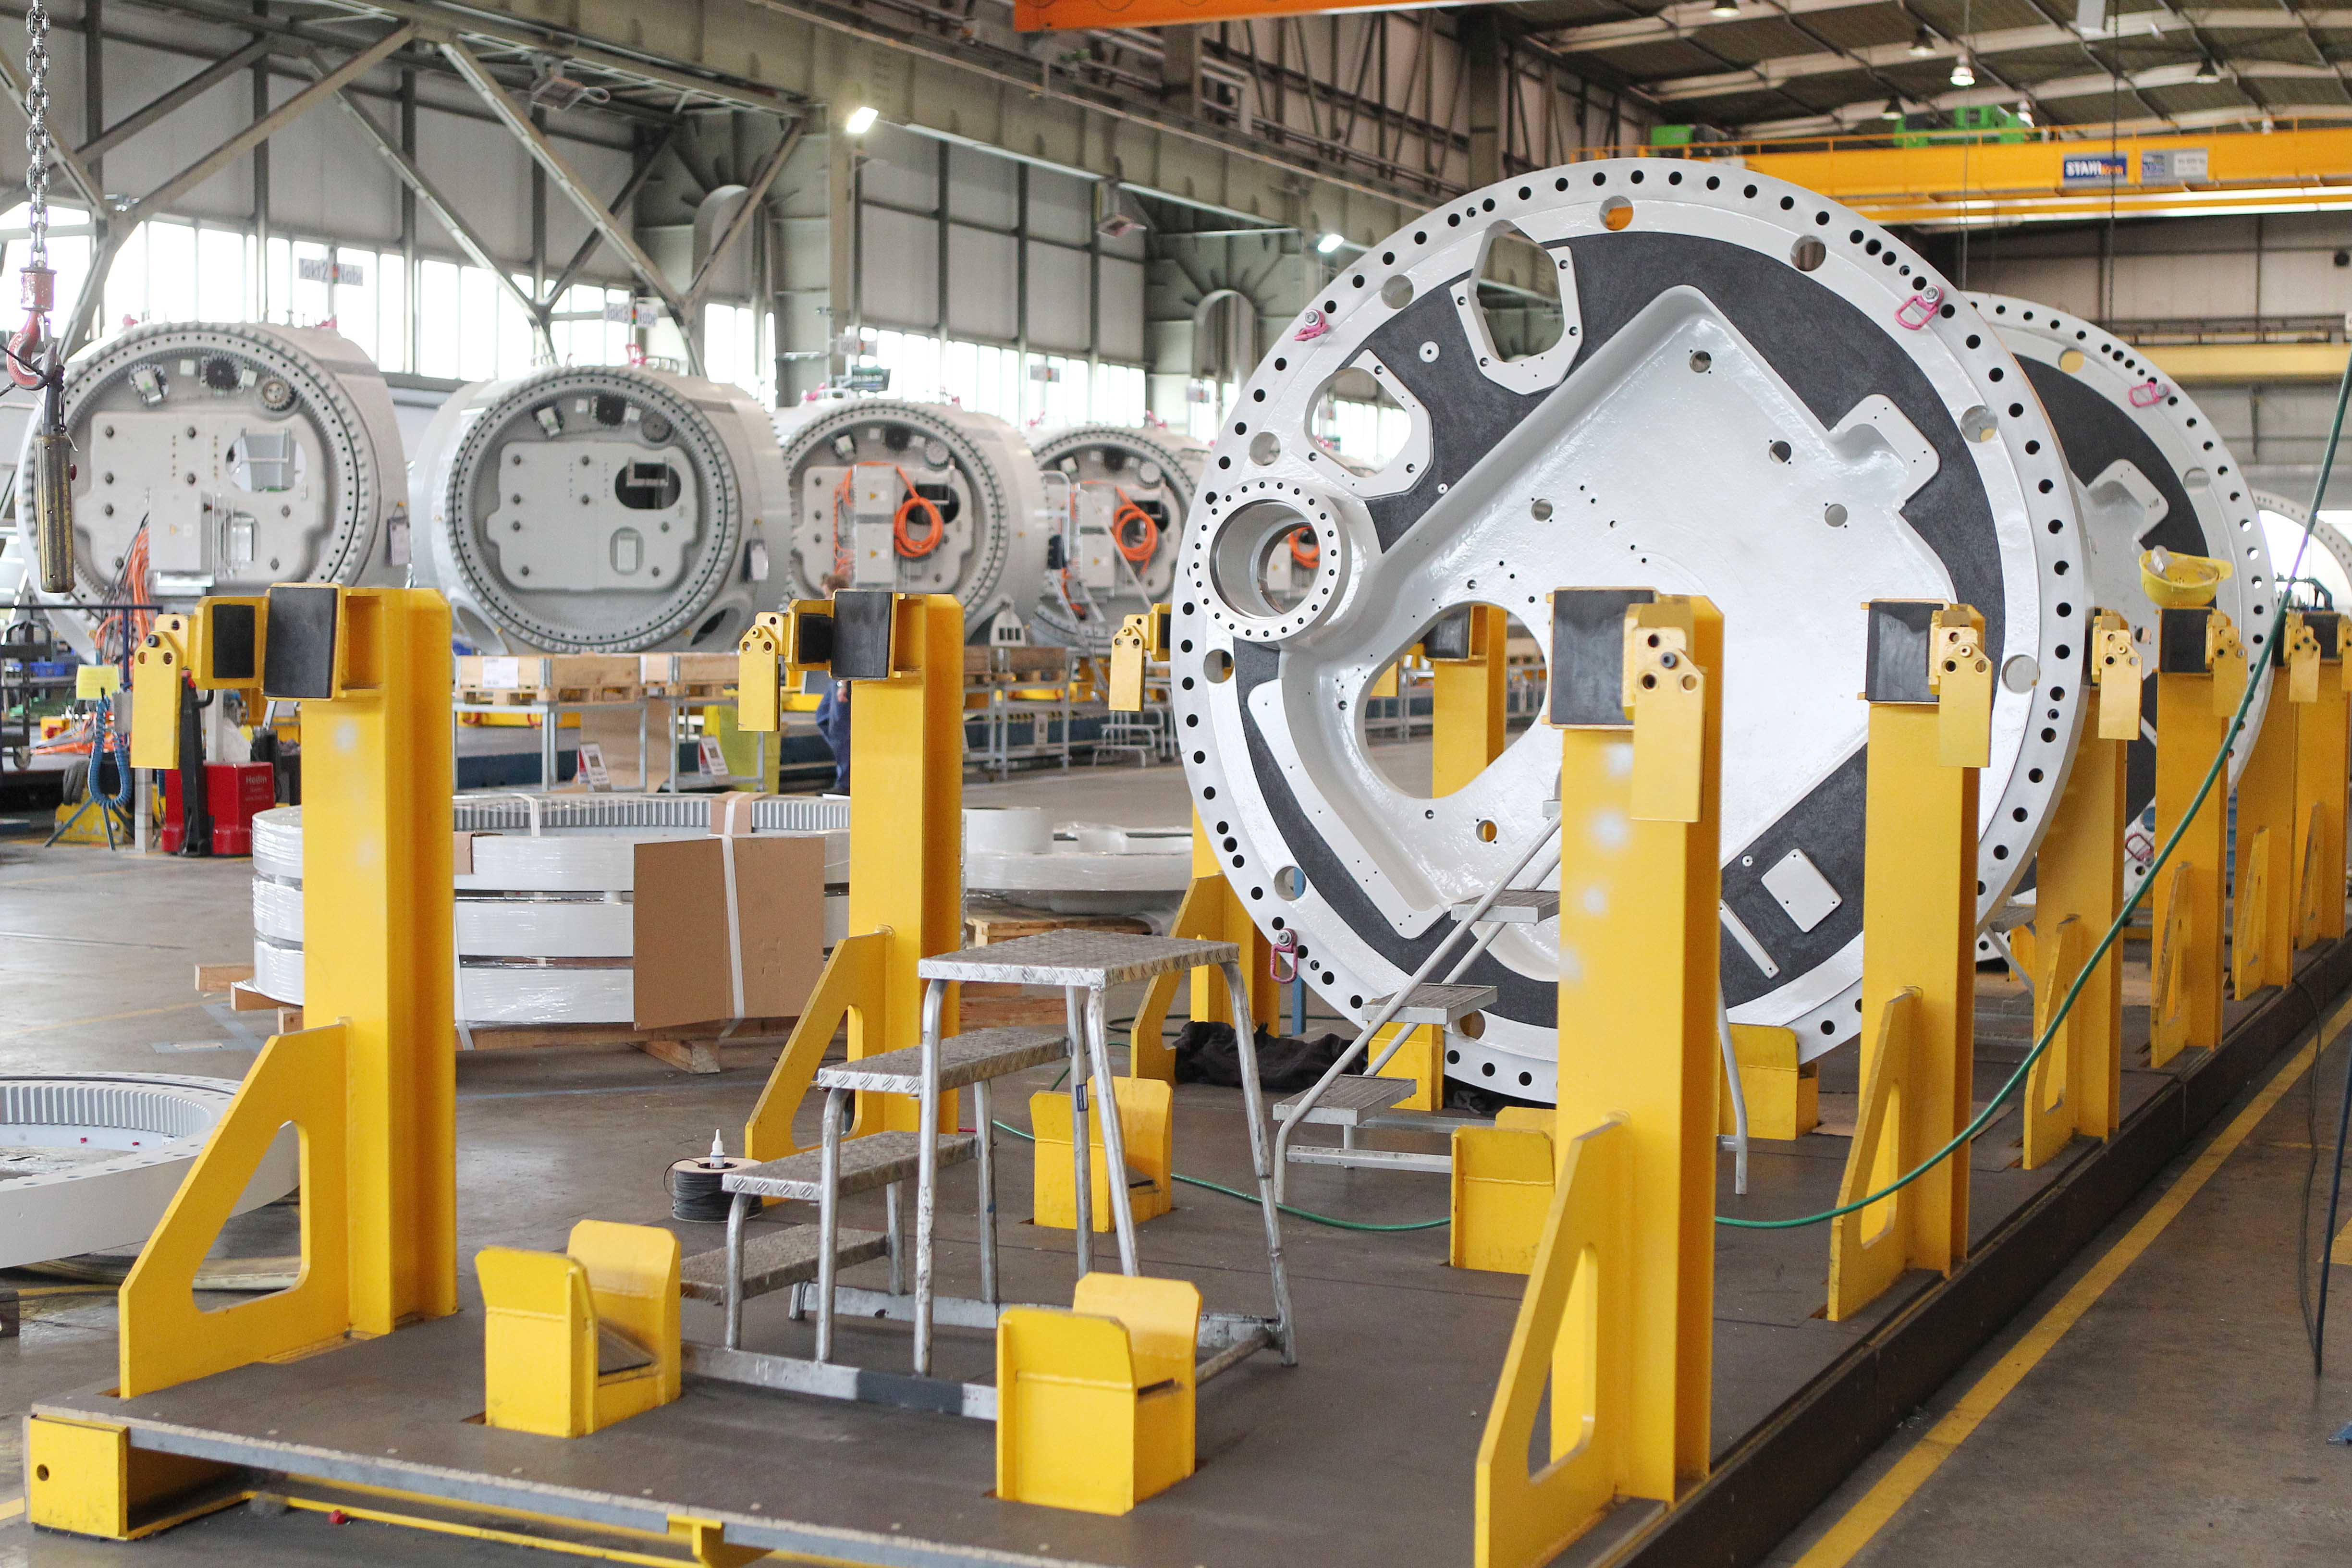 nordex_line-production_09 Nordex Secures Two PTC-Qualifying Turbine Orders